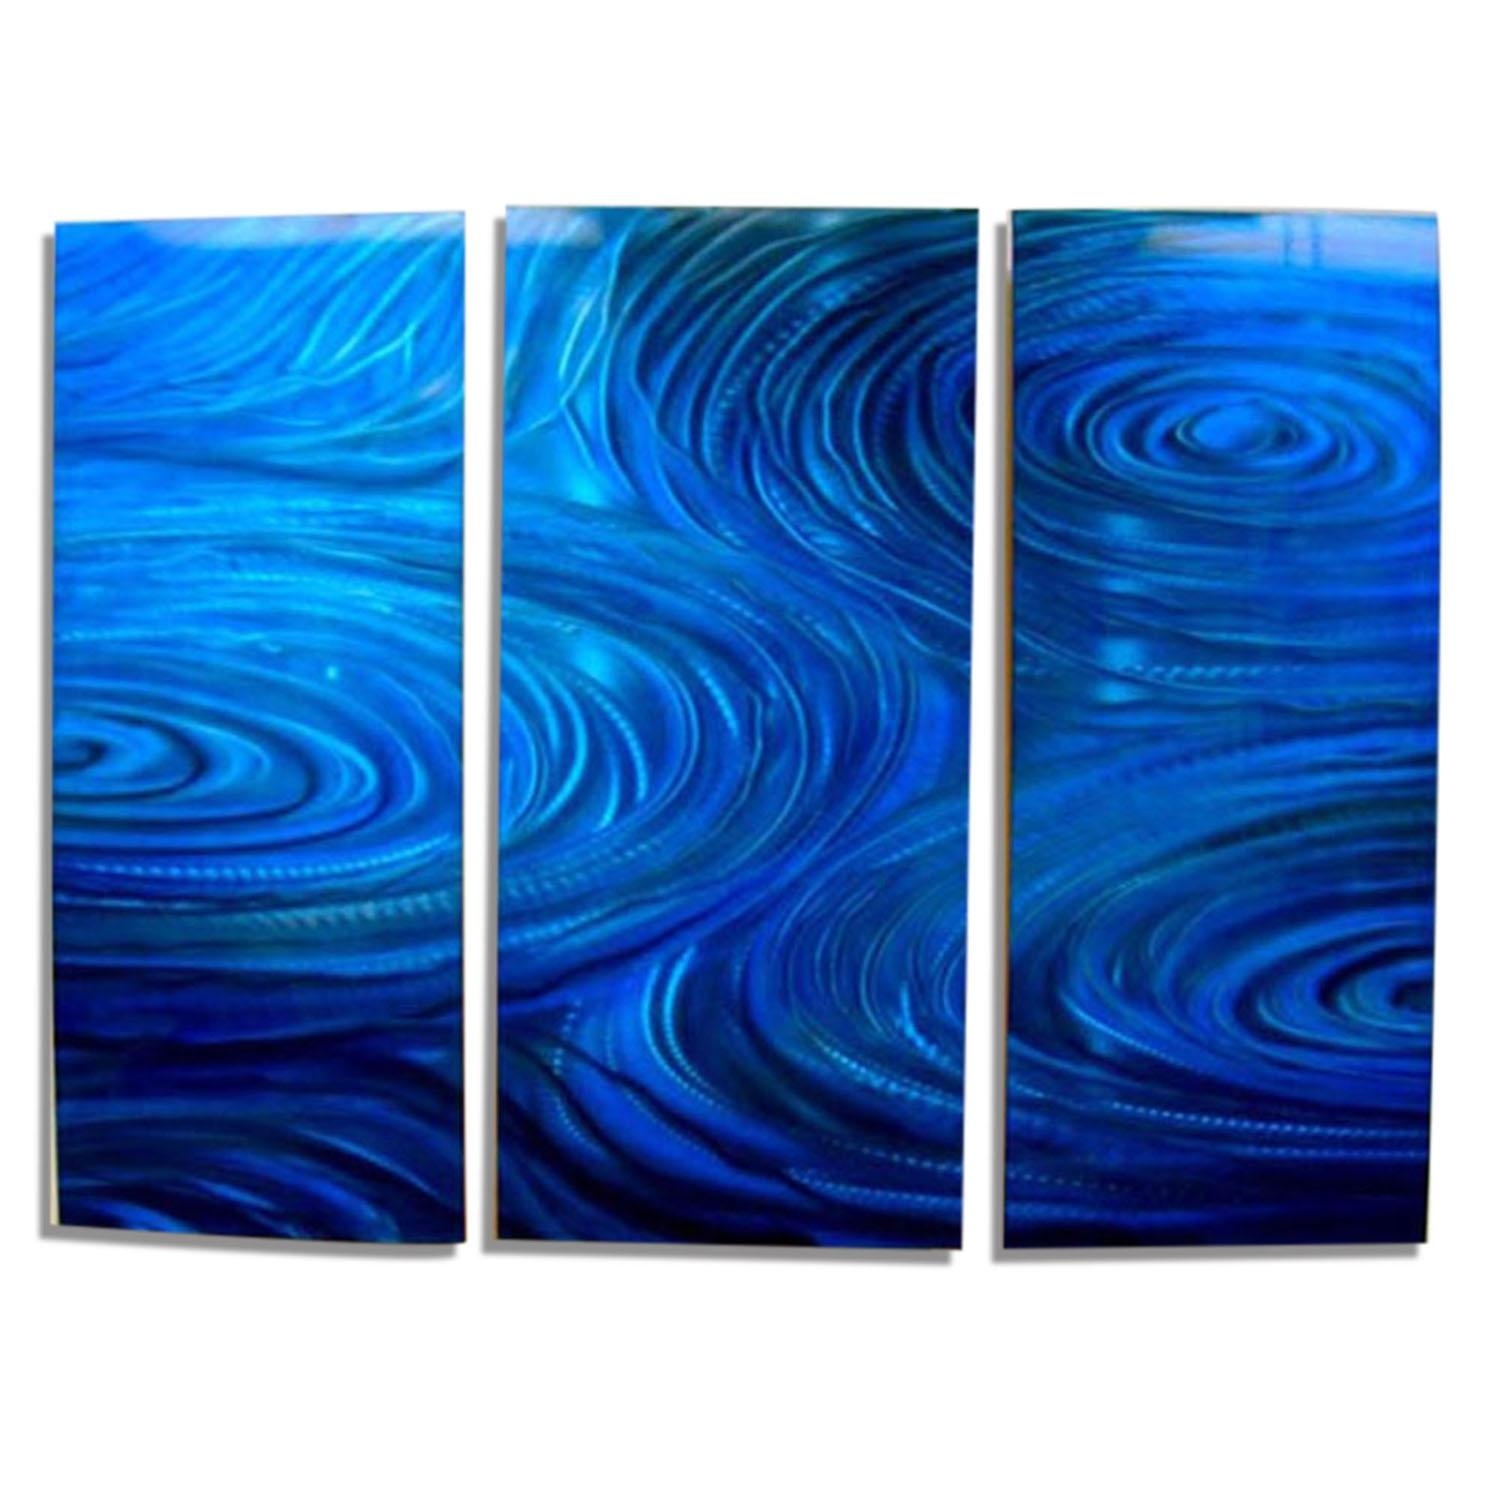 Cobalt Ripple 3 – Cobalt Blue Three Piece Contemporary Metal Wall For Blue And Silver Wall Art (Image 11 of 20)